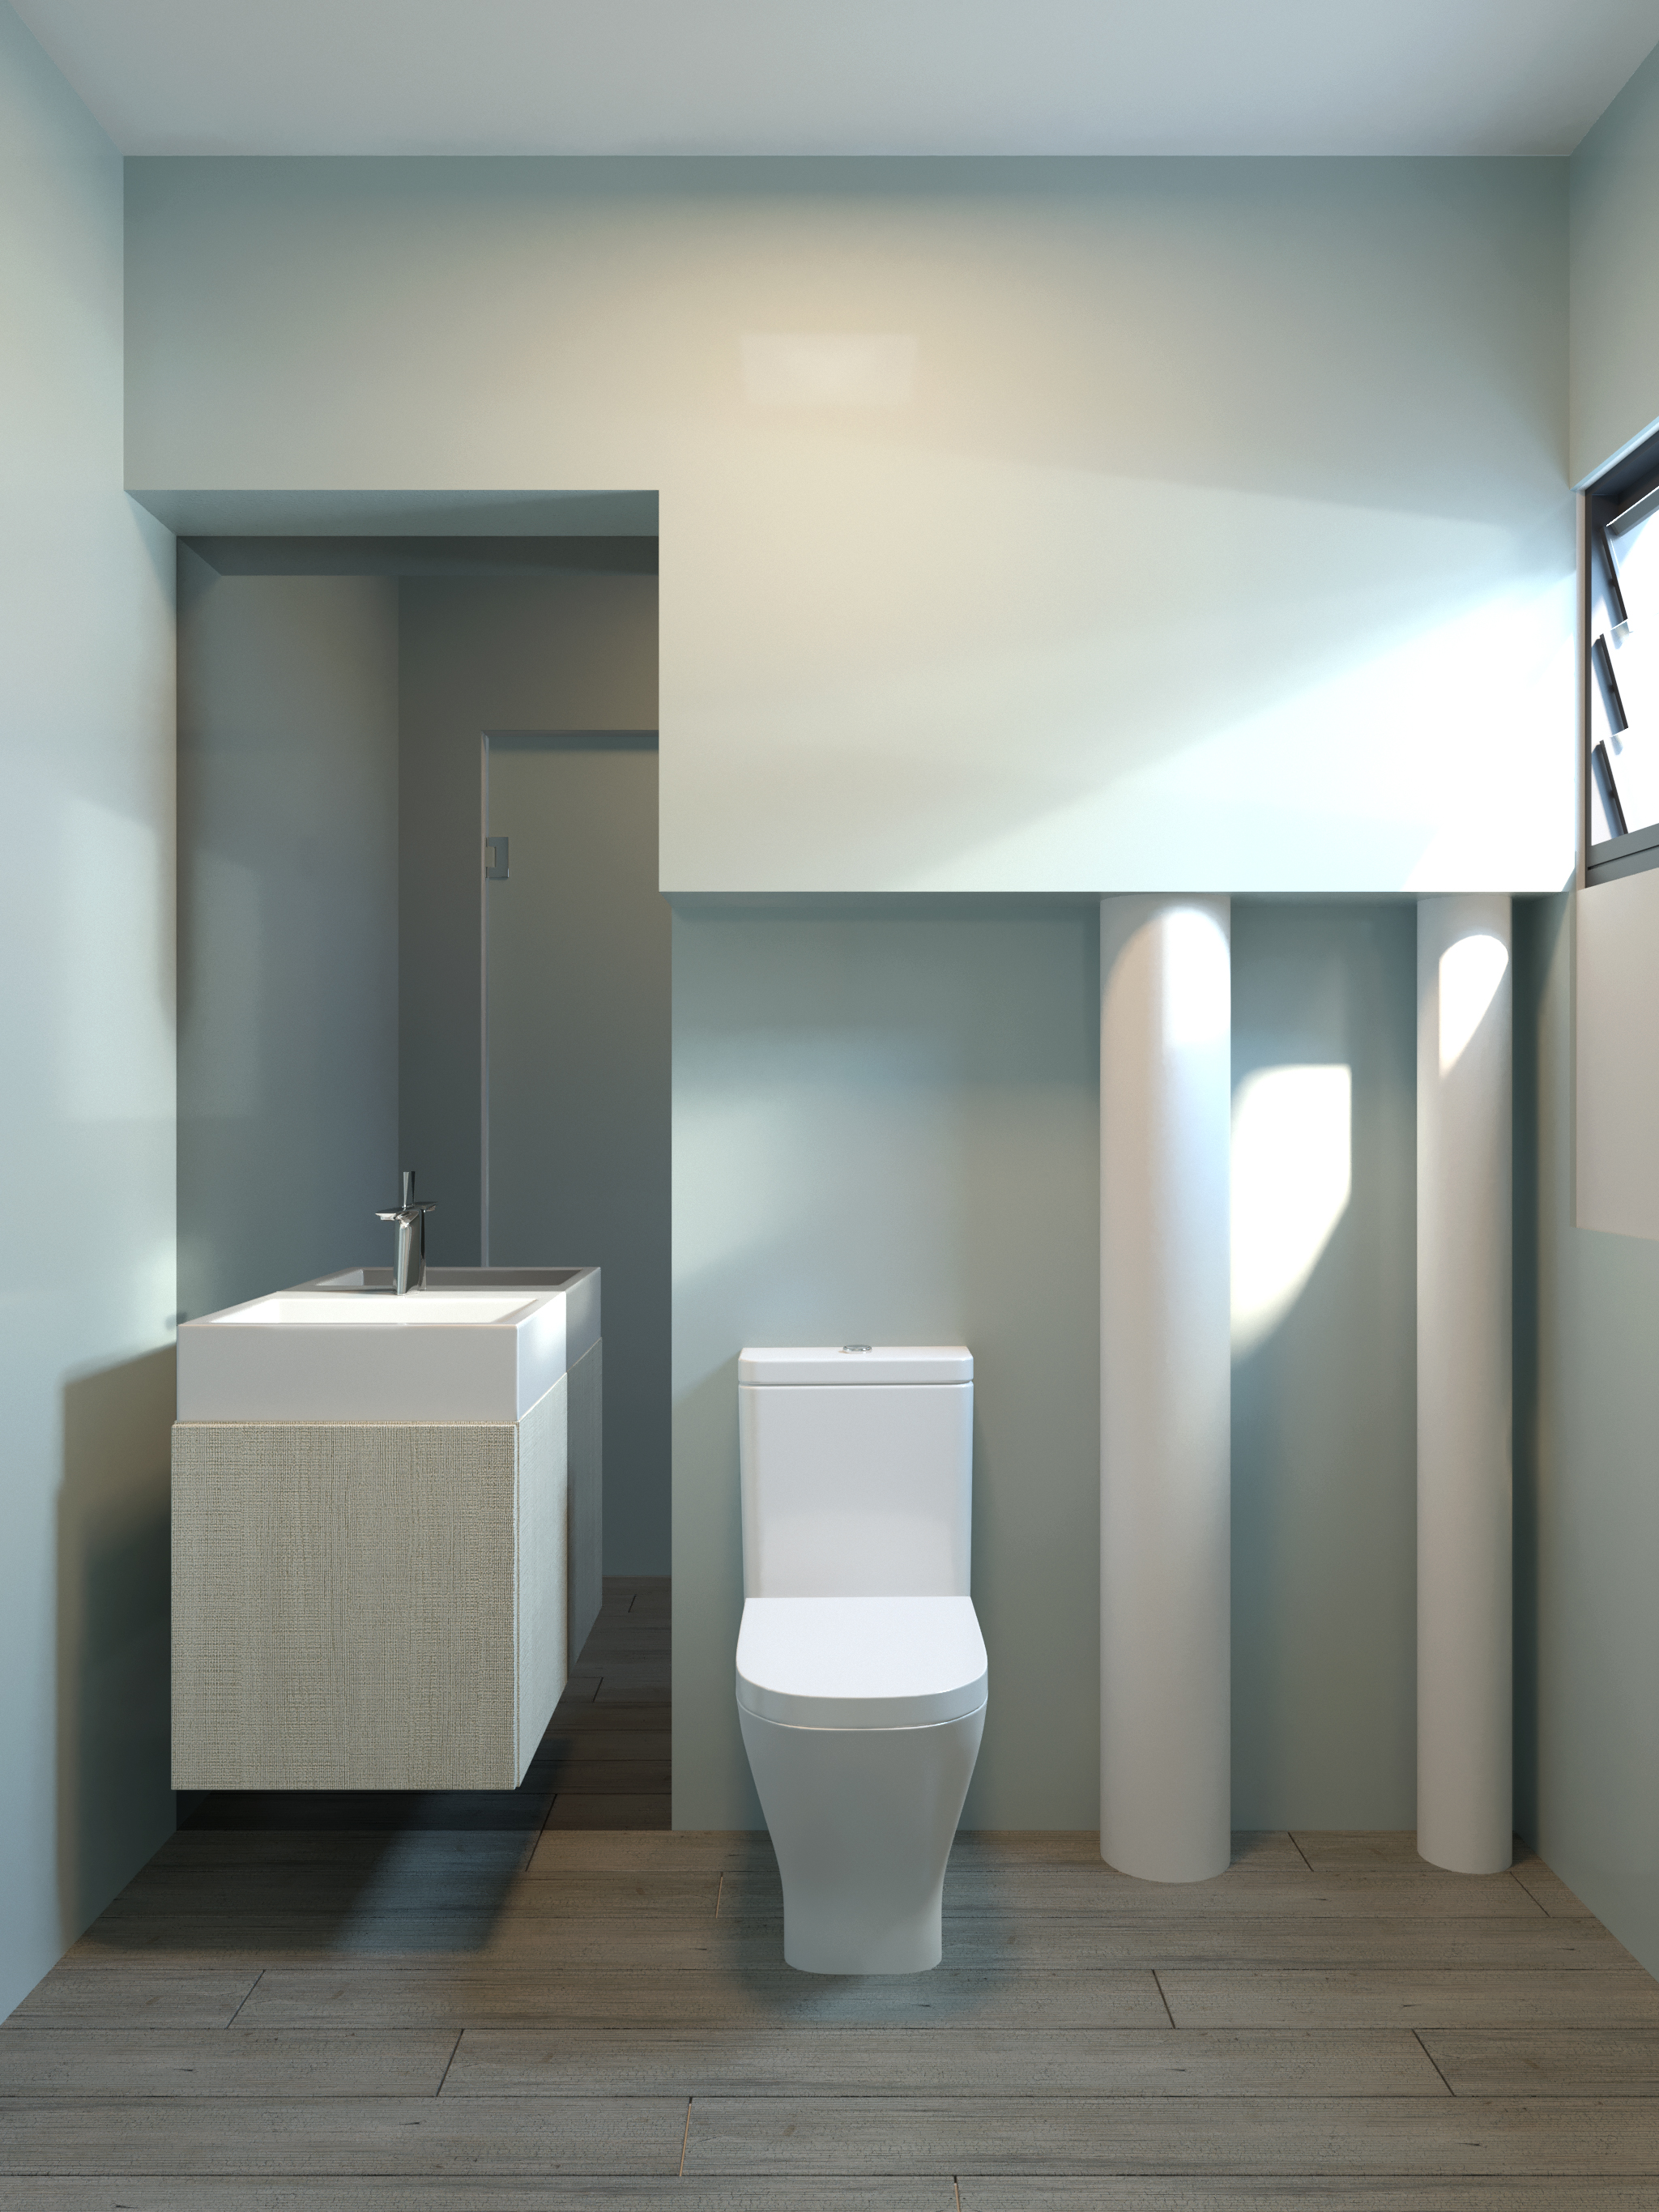 3D COMMON BATHROOM